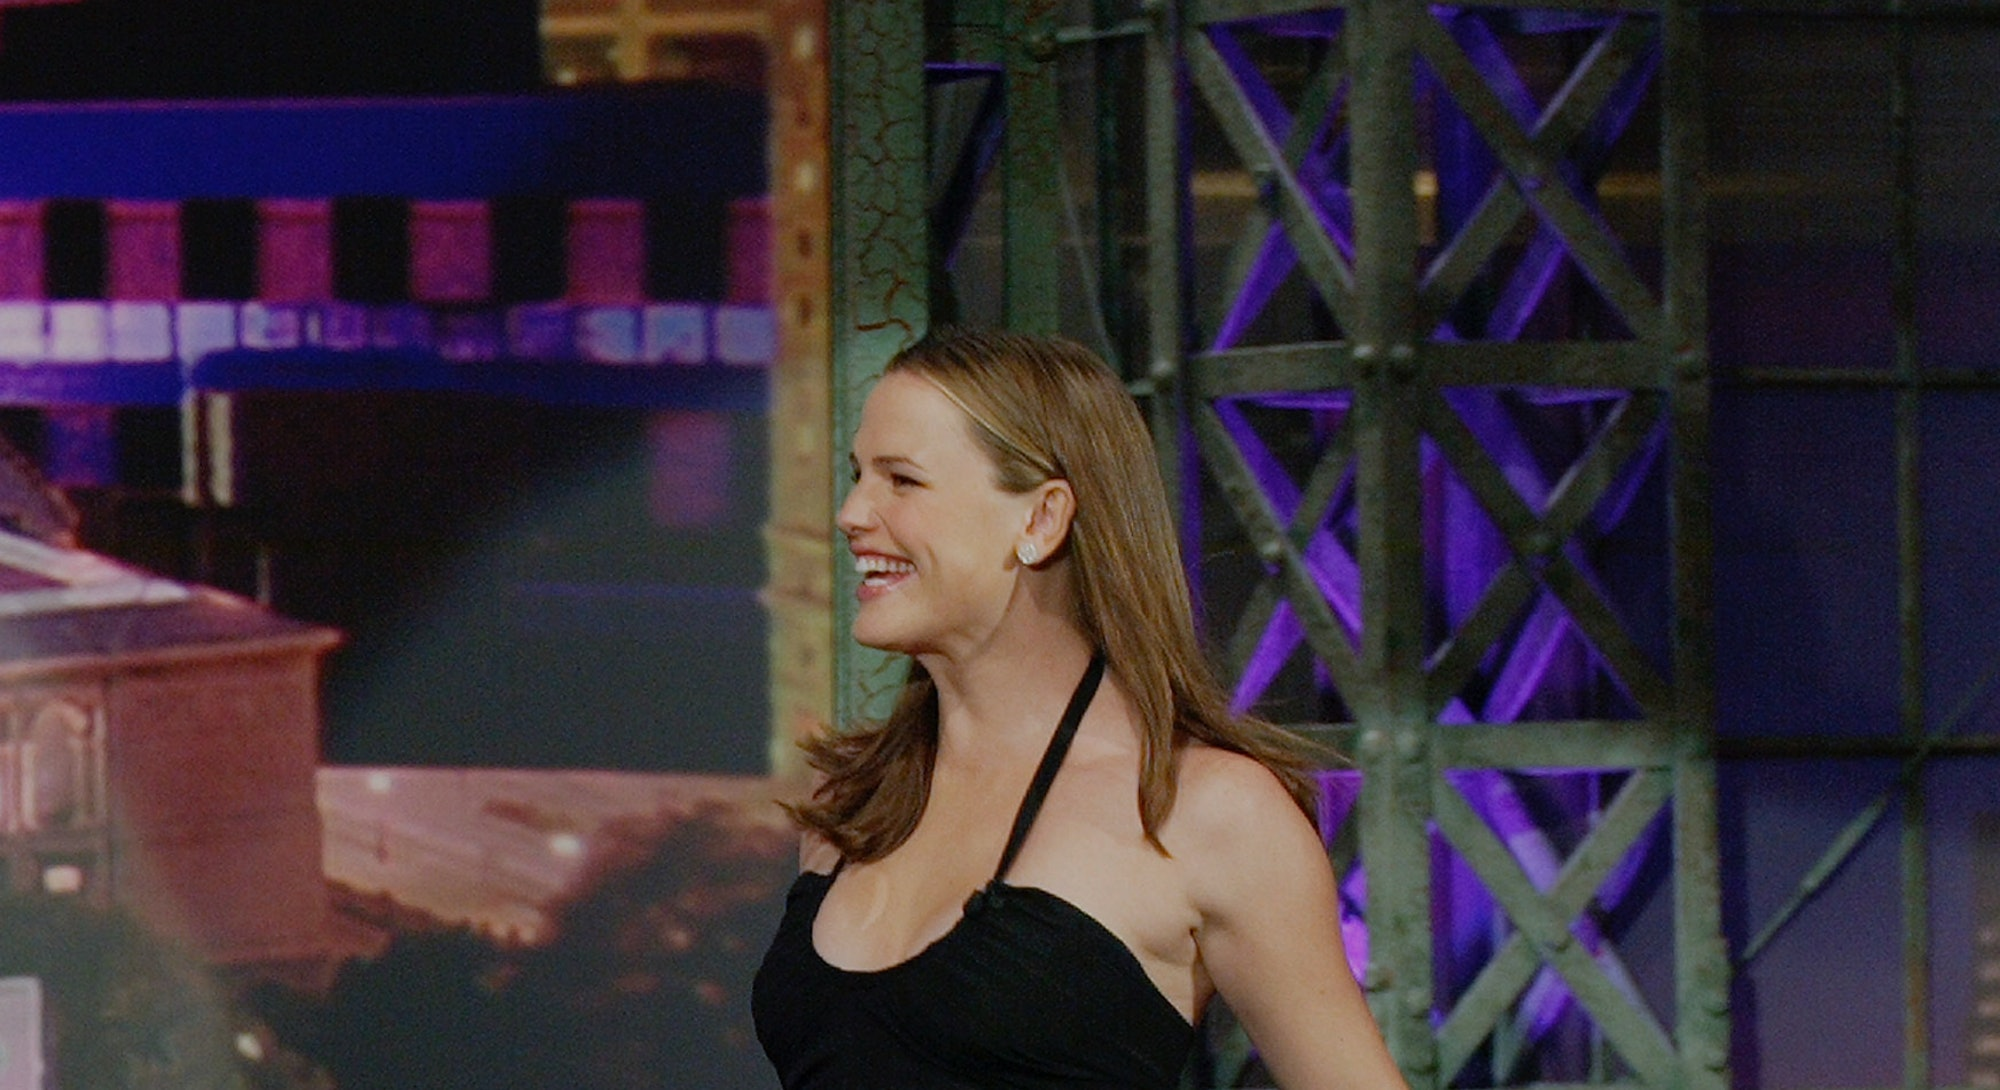 Jennifer Garner made a talkshow appearance in 2005 while pregnant.